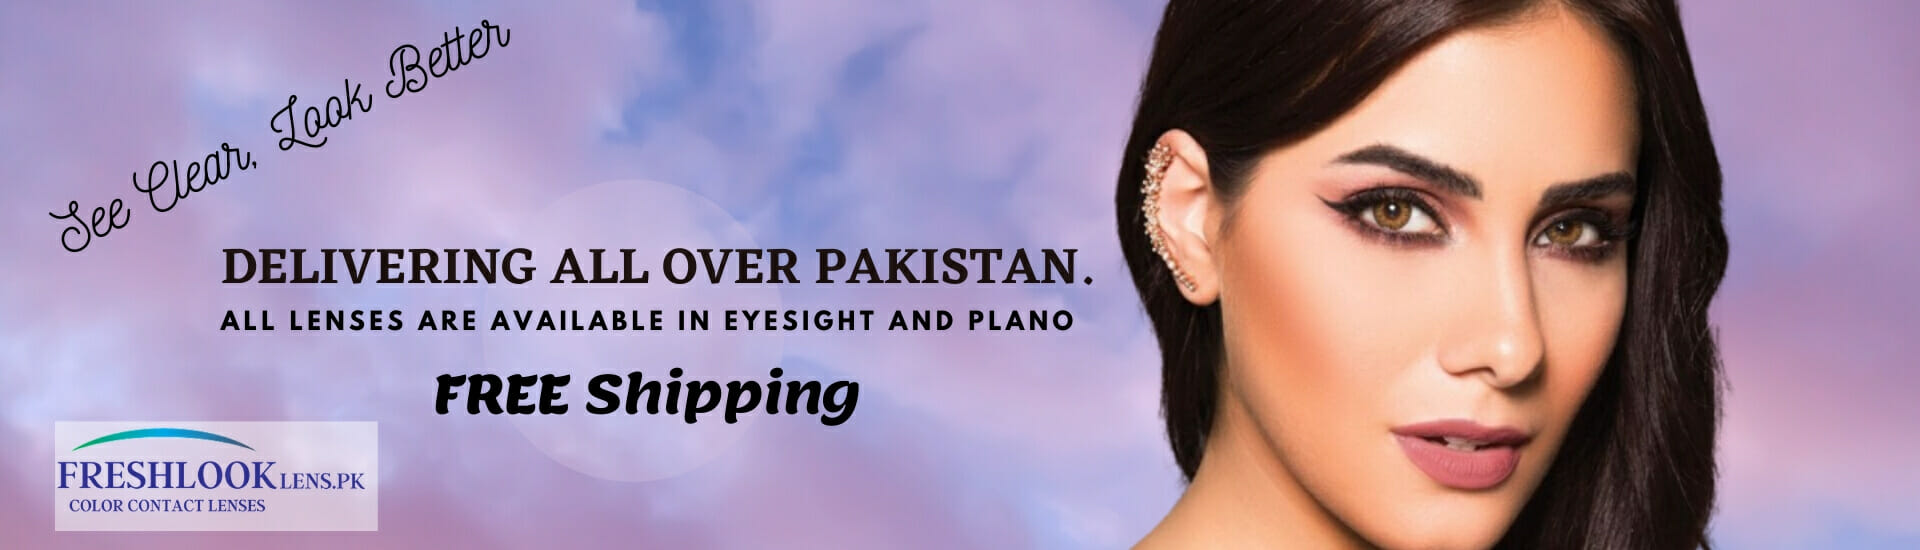 Buy Freshlook One Day, ColrBlends and Colors Collection Contact lenses in Pakistan @ Freshlooklens.pk